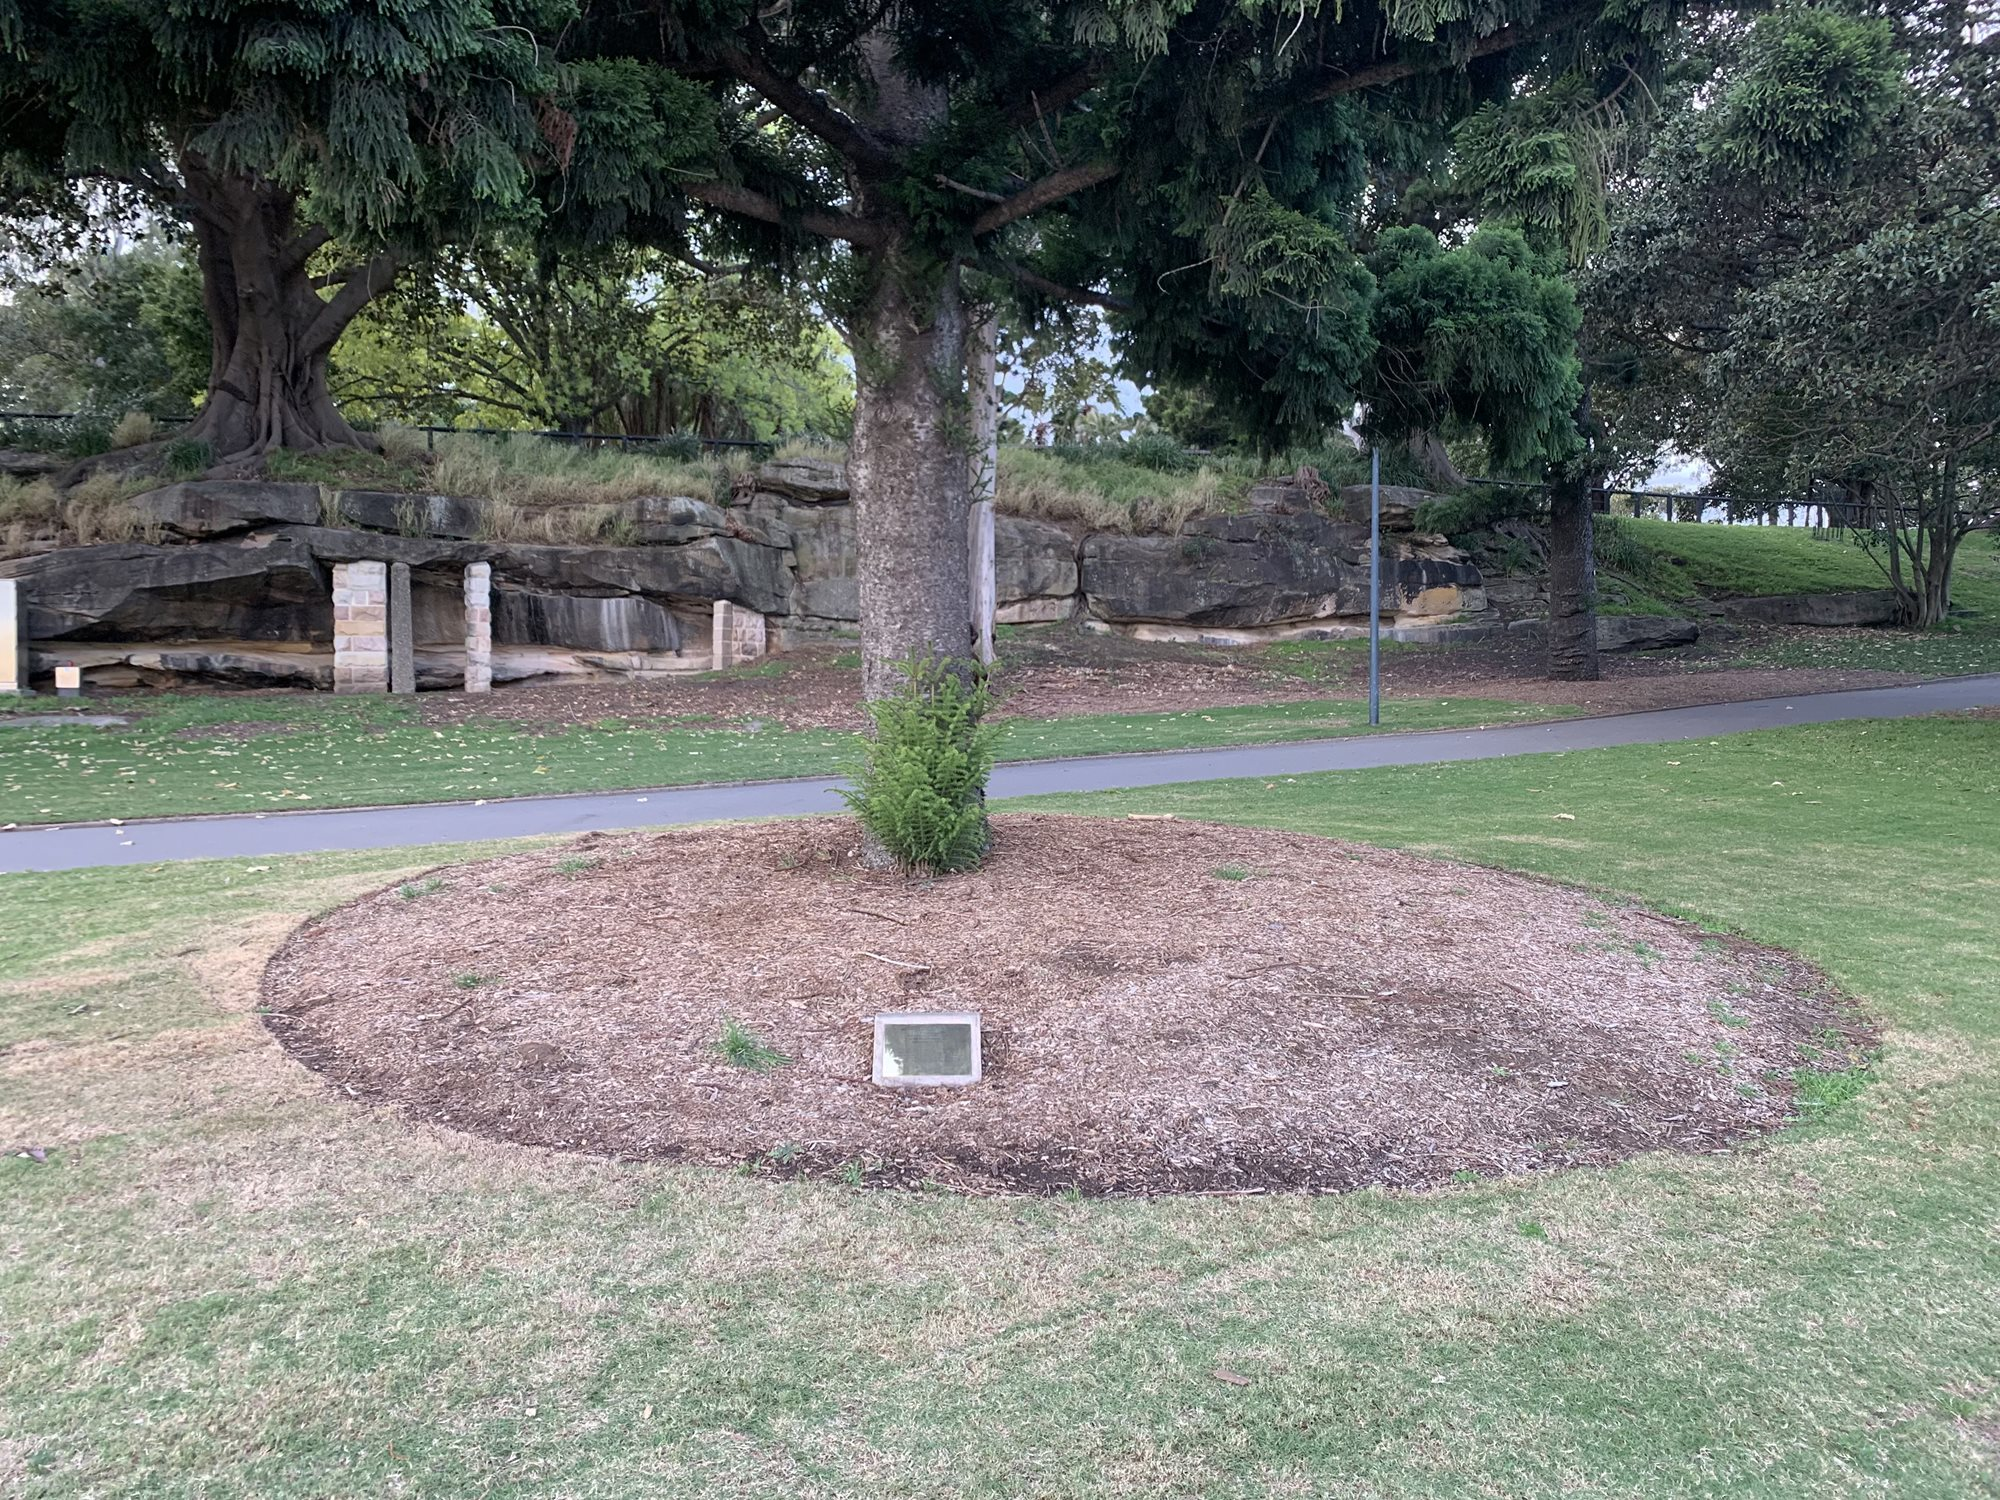 The 9/11 memorial tree in the Domain